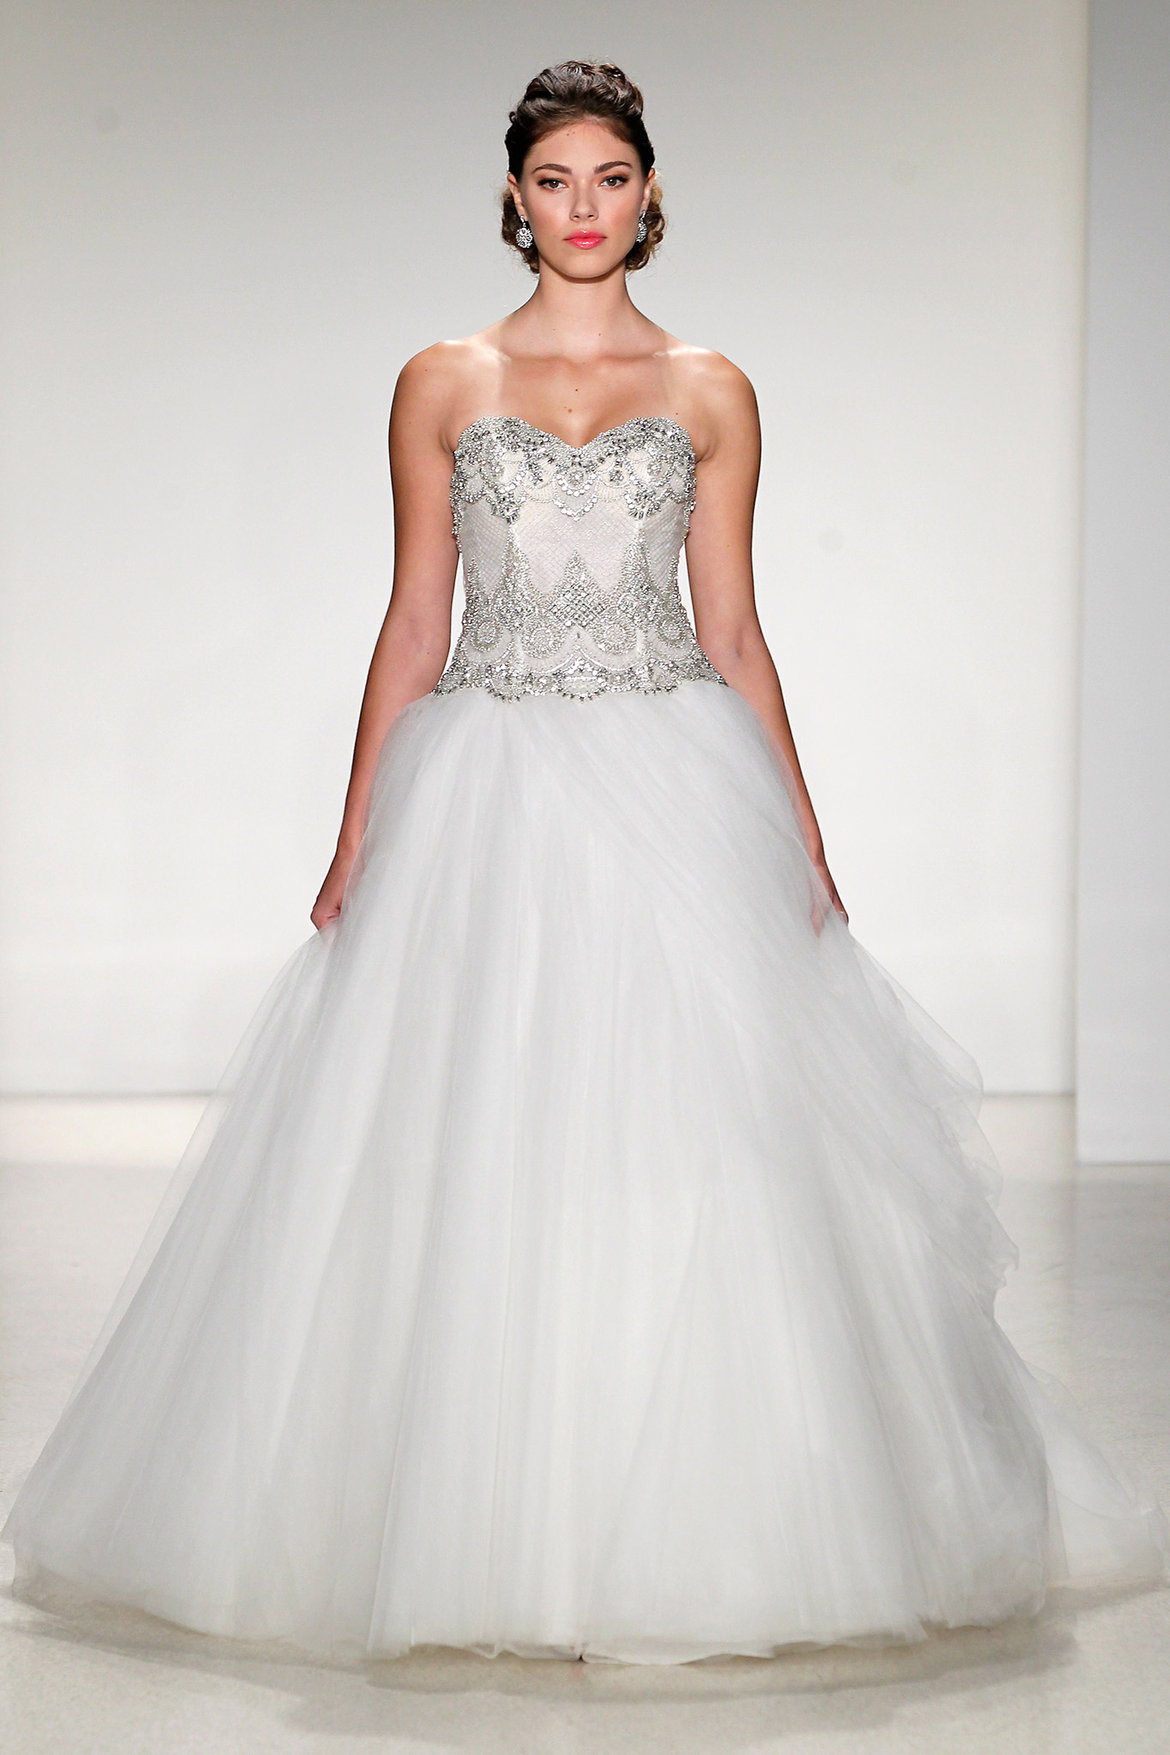 The Biggest Gown Trends From The 2015 Bridal Runway Shows Bridalguide